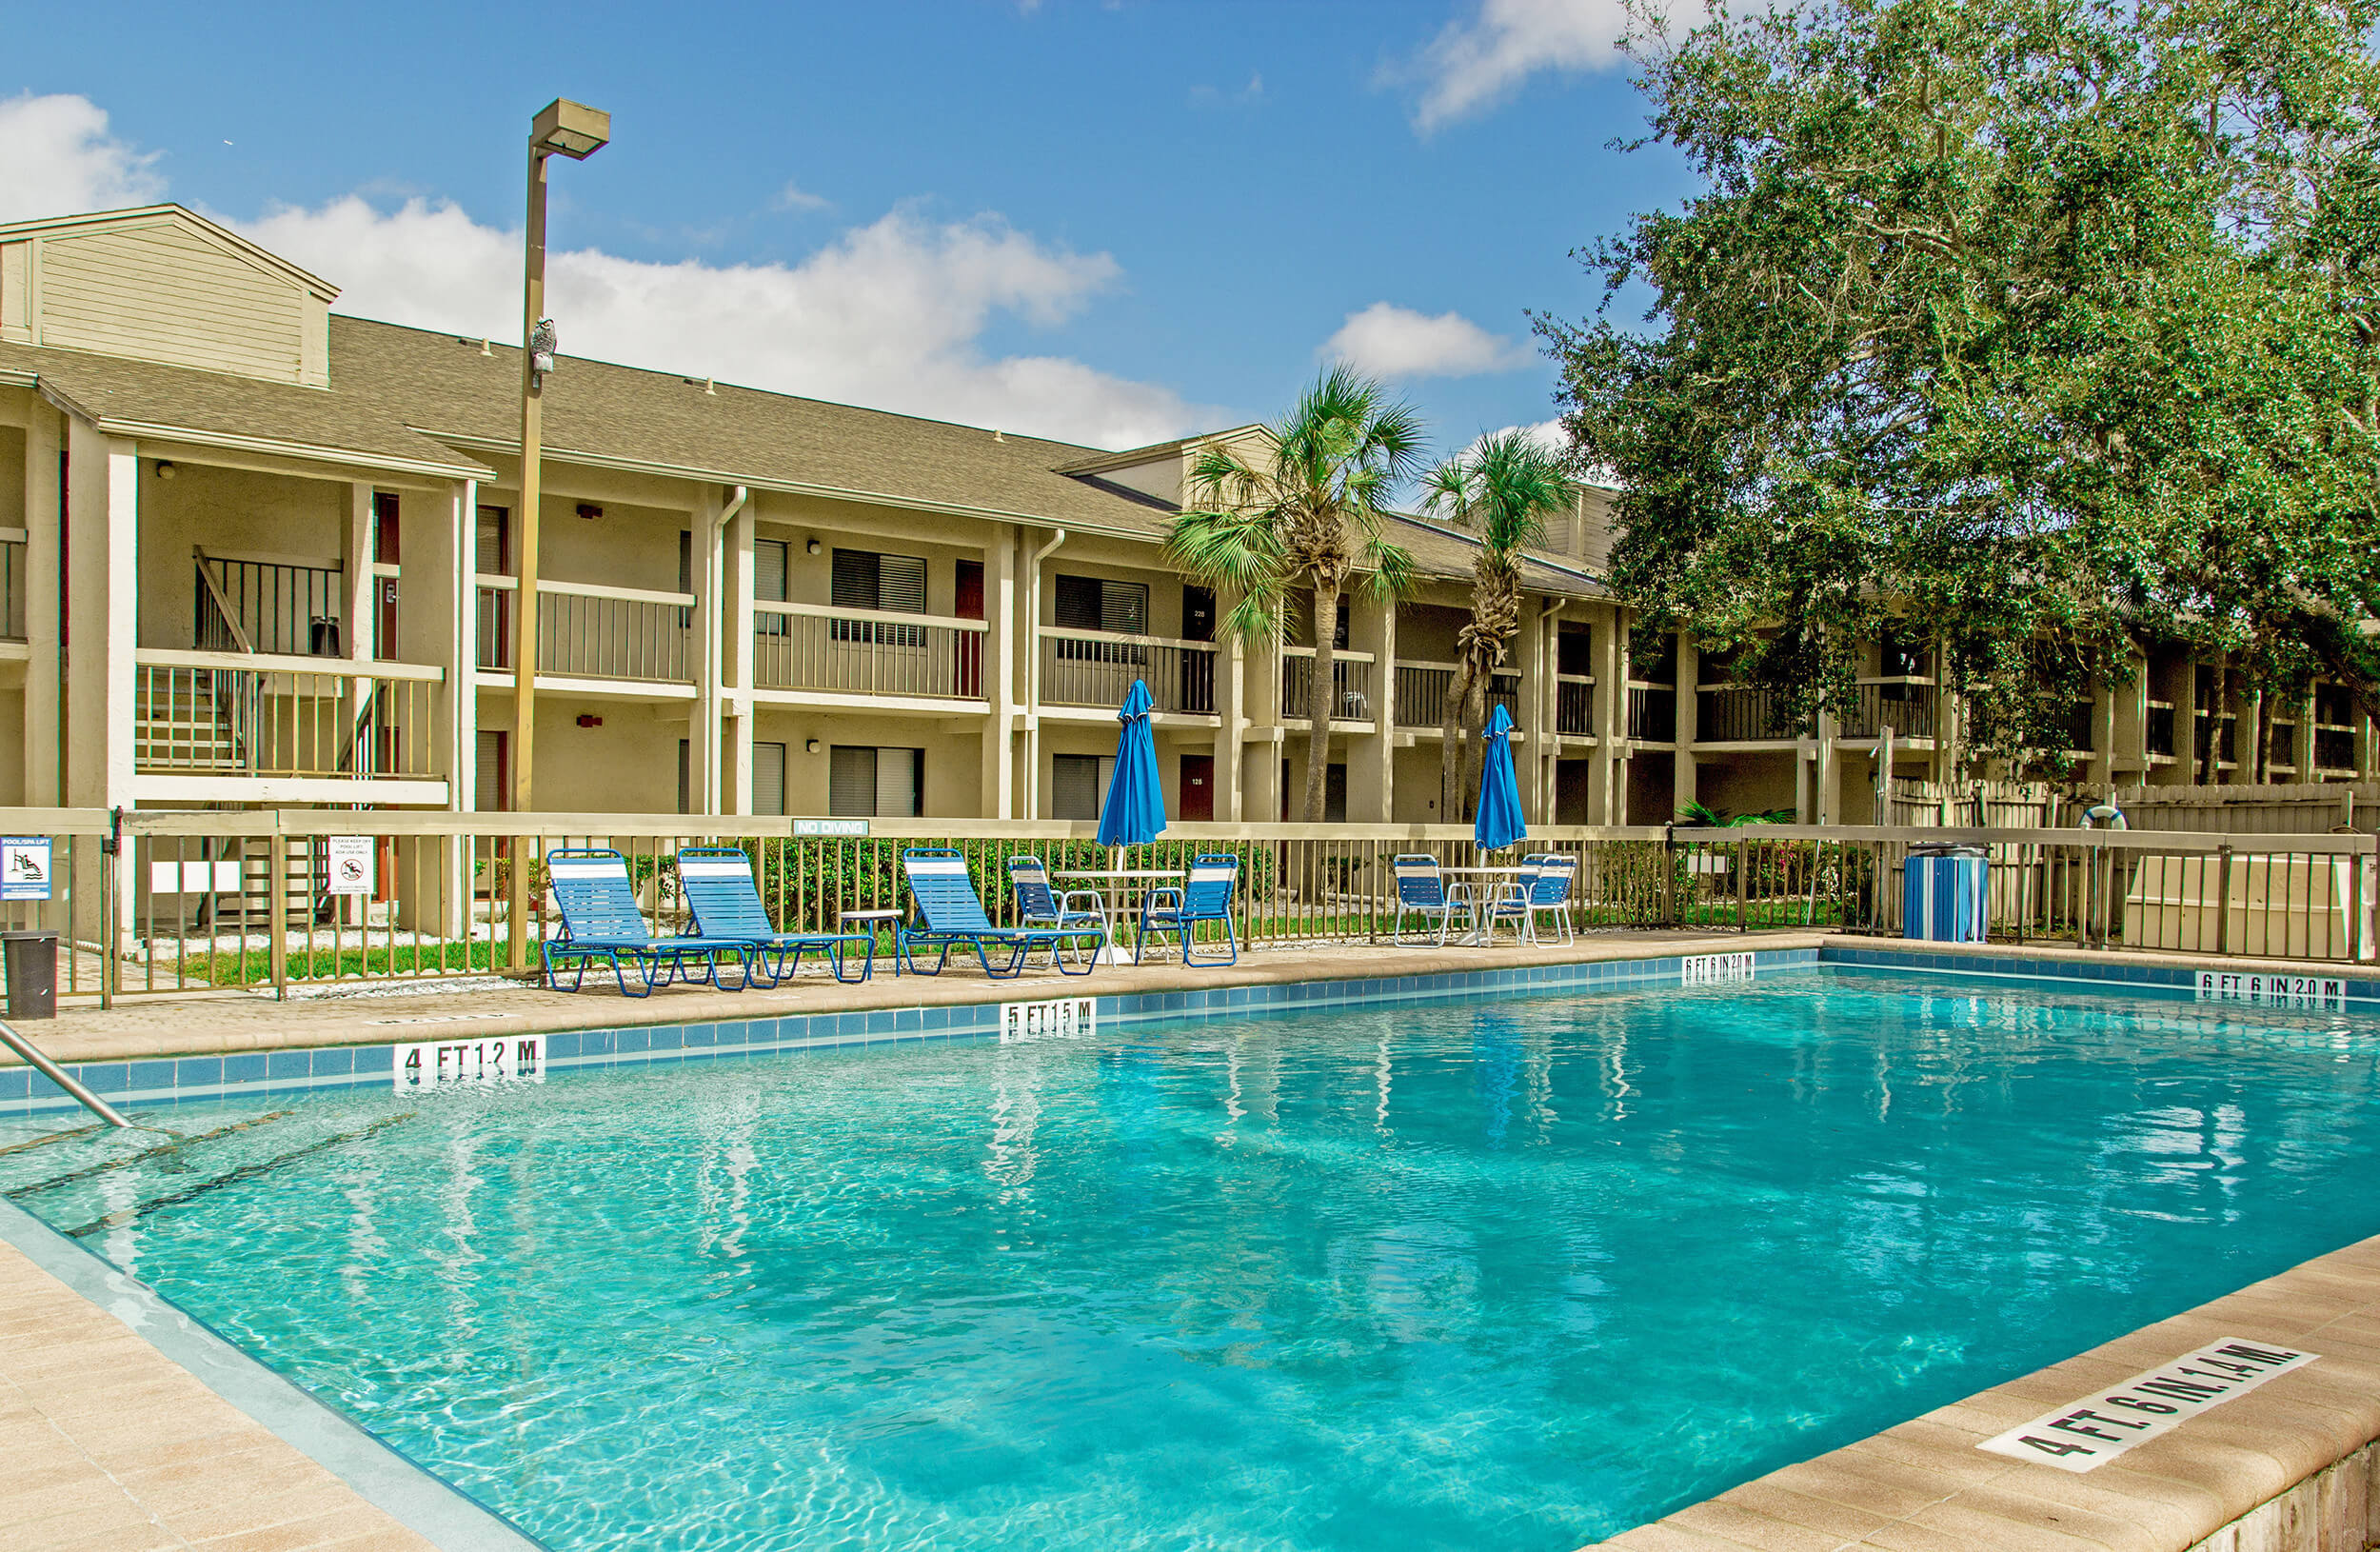 Large outdoor pool with lounge chairs surrounded by villas | Club Orlando | Westgate Resorts